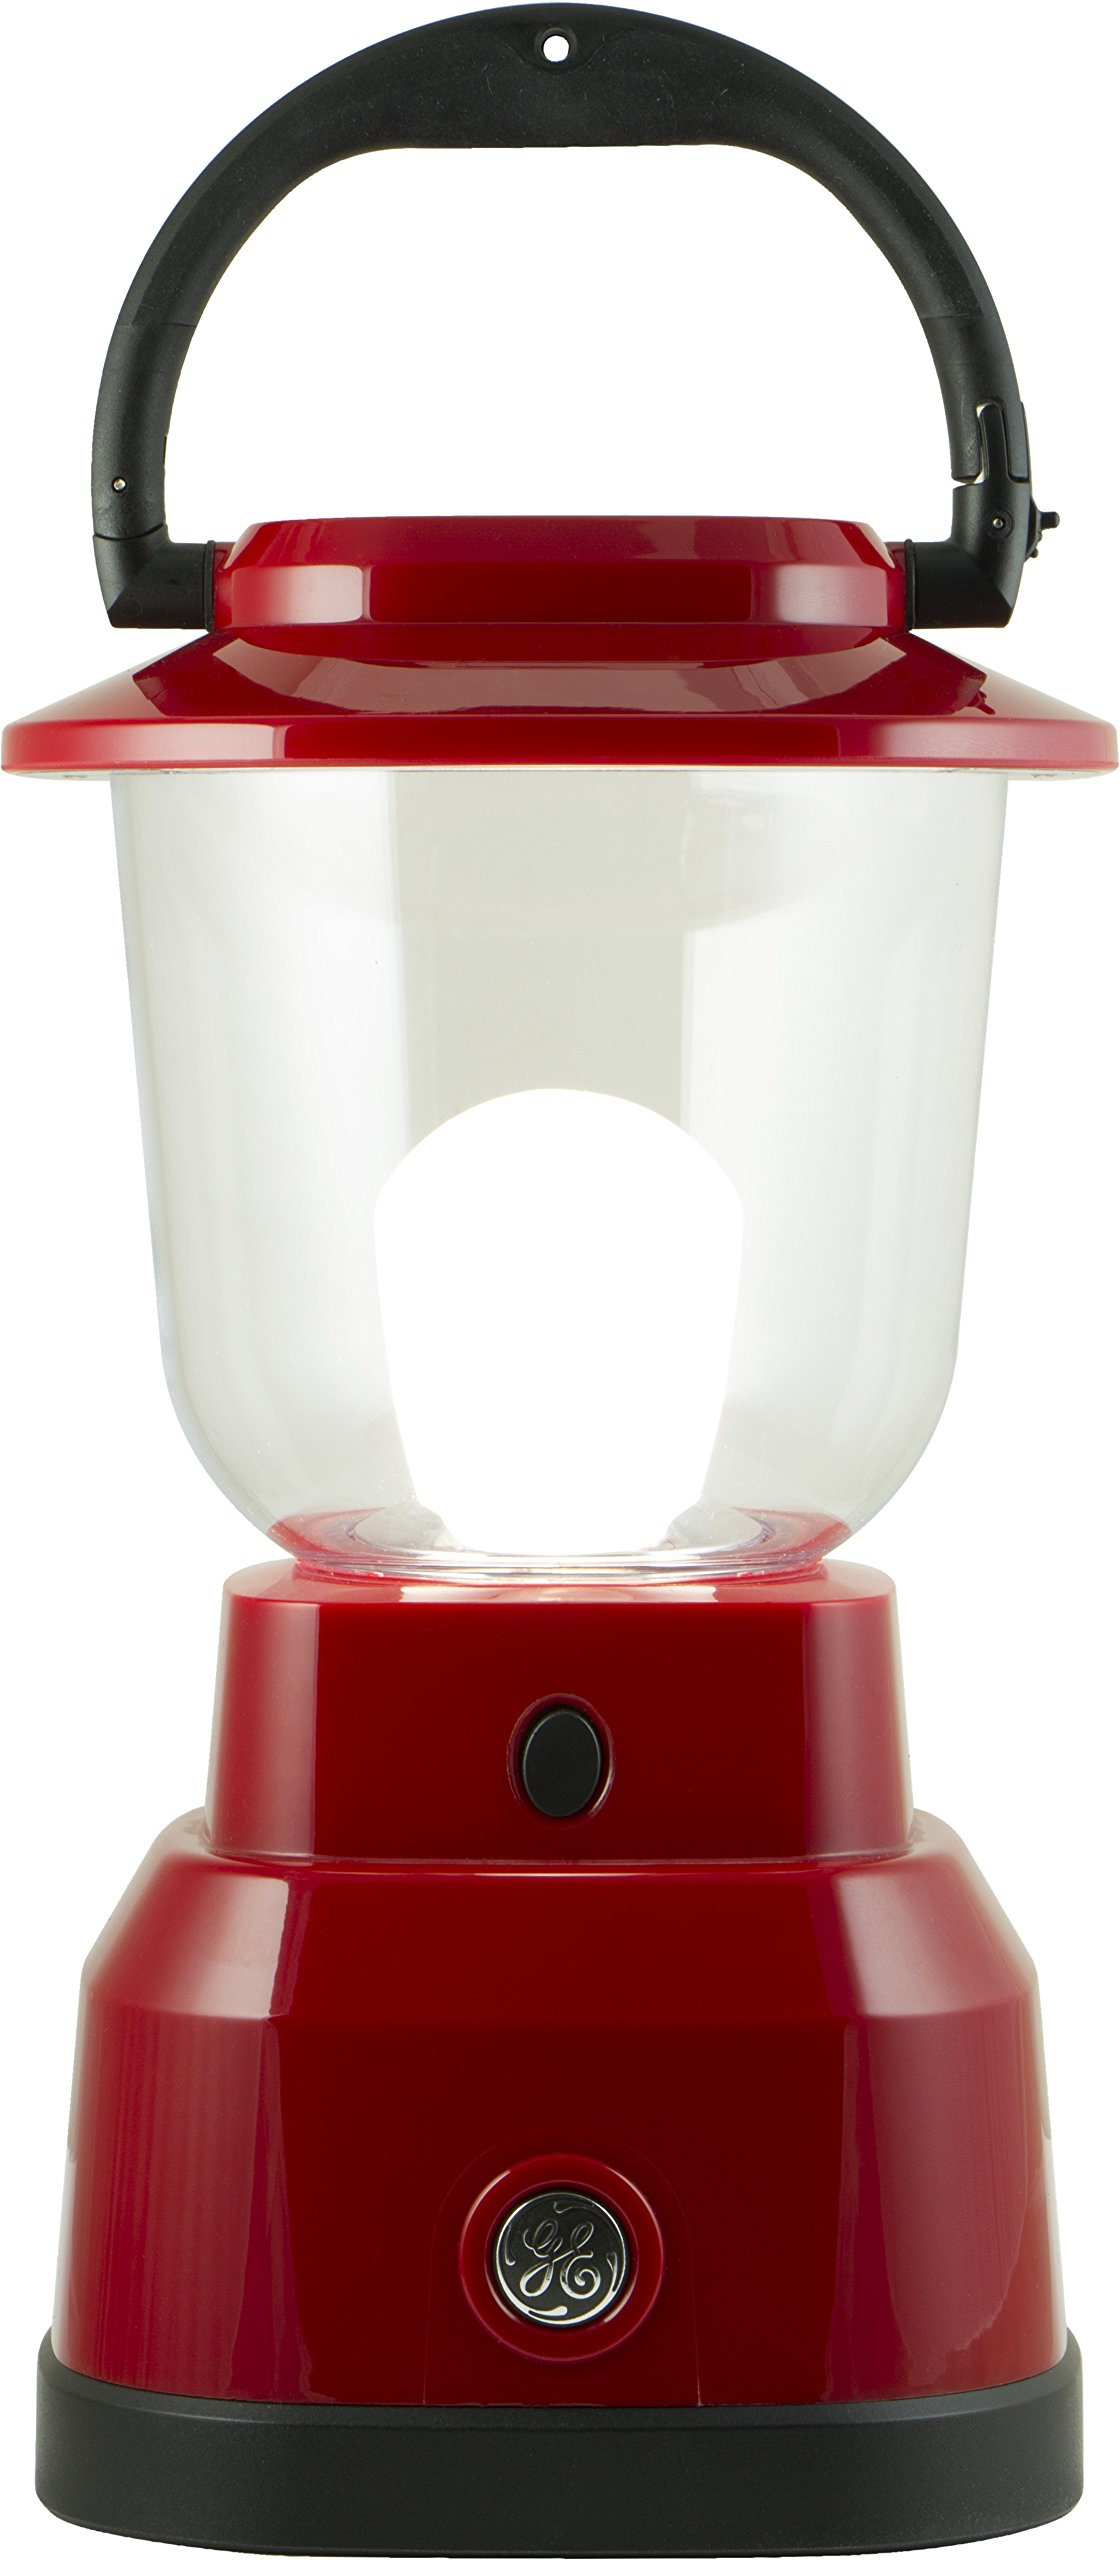 Enbrighten LED Lantern, Battery Operated, USB Charging, Red Finish, 800 Lumens, 200 Hour Runtime, 3 Light Levels, Ideal for Outdoors, Camping, Hurricane, Storm, Tornado & Emergency, 29923 by GE Enbrighten